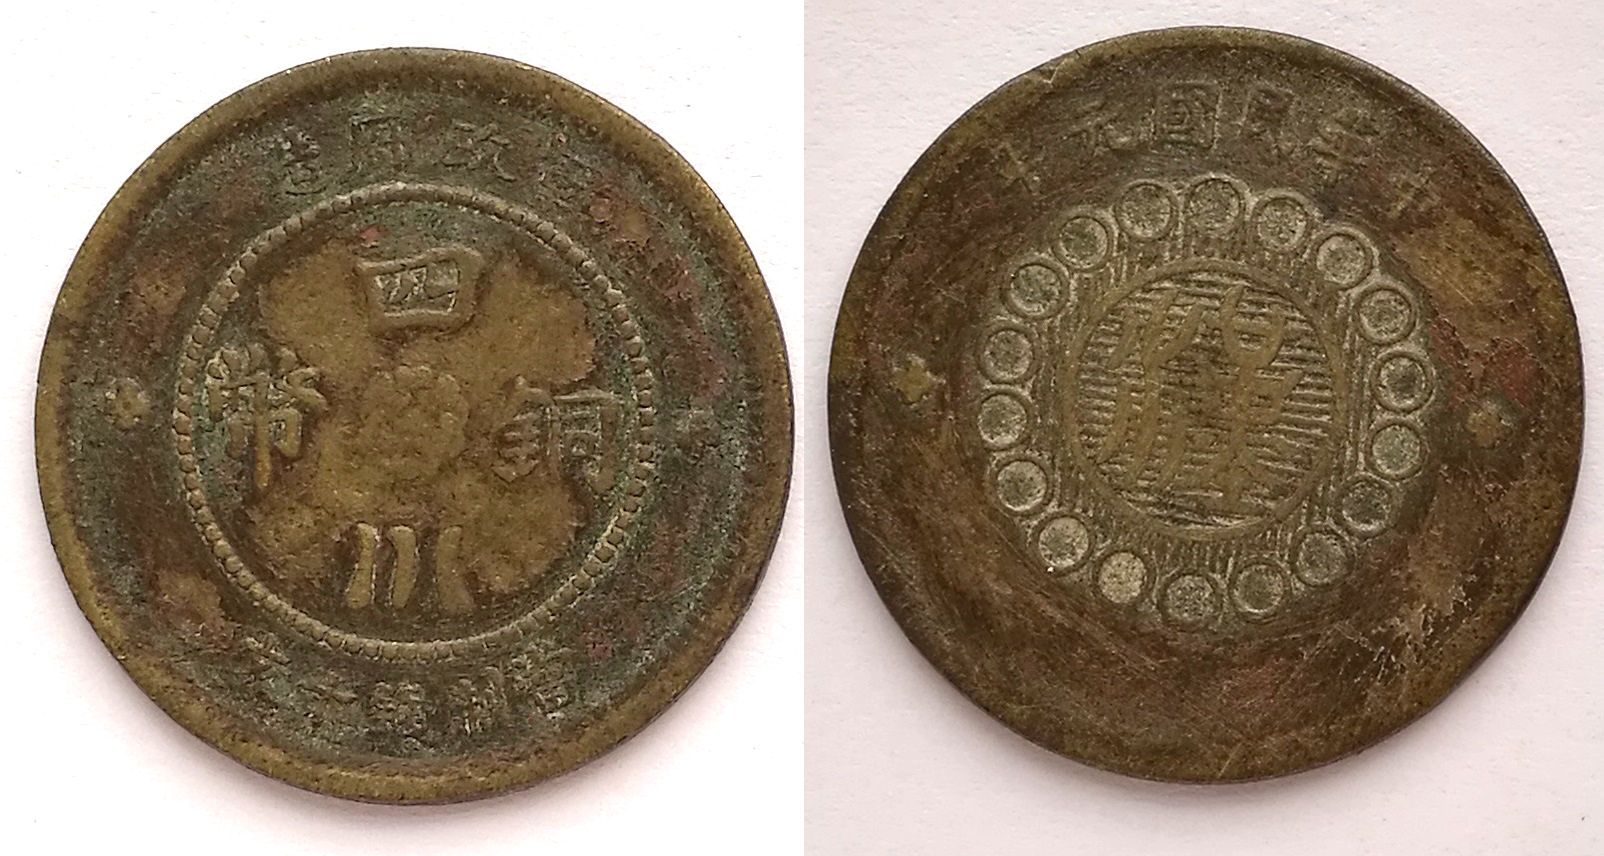 K5245, Szechuan (Si-Chuan) Province 10-Cash Coin, 1911 China